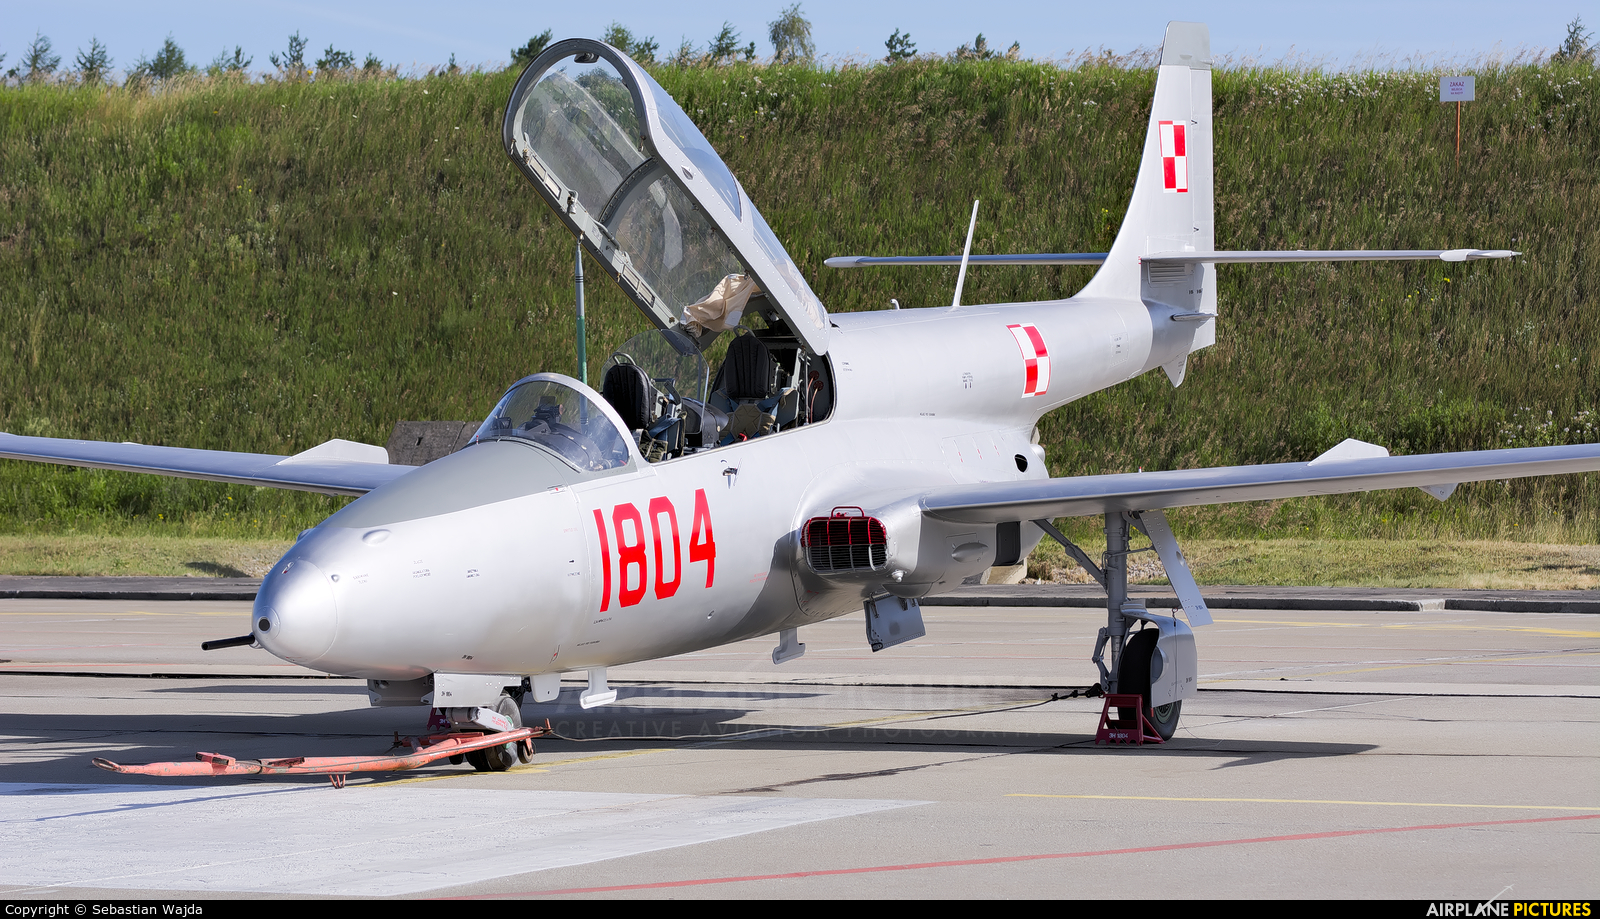 Poland - Air Force 1804 aircraft at Świdwin